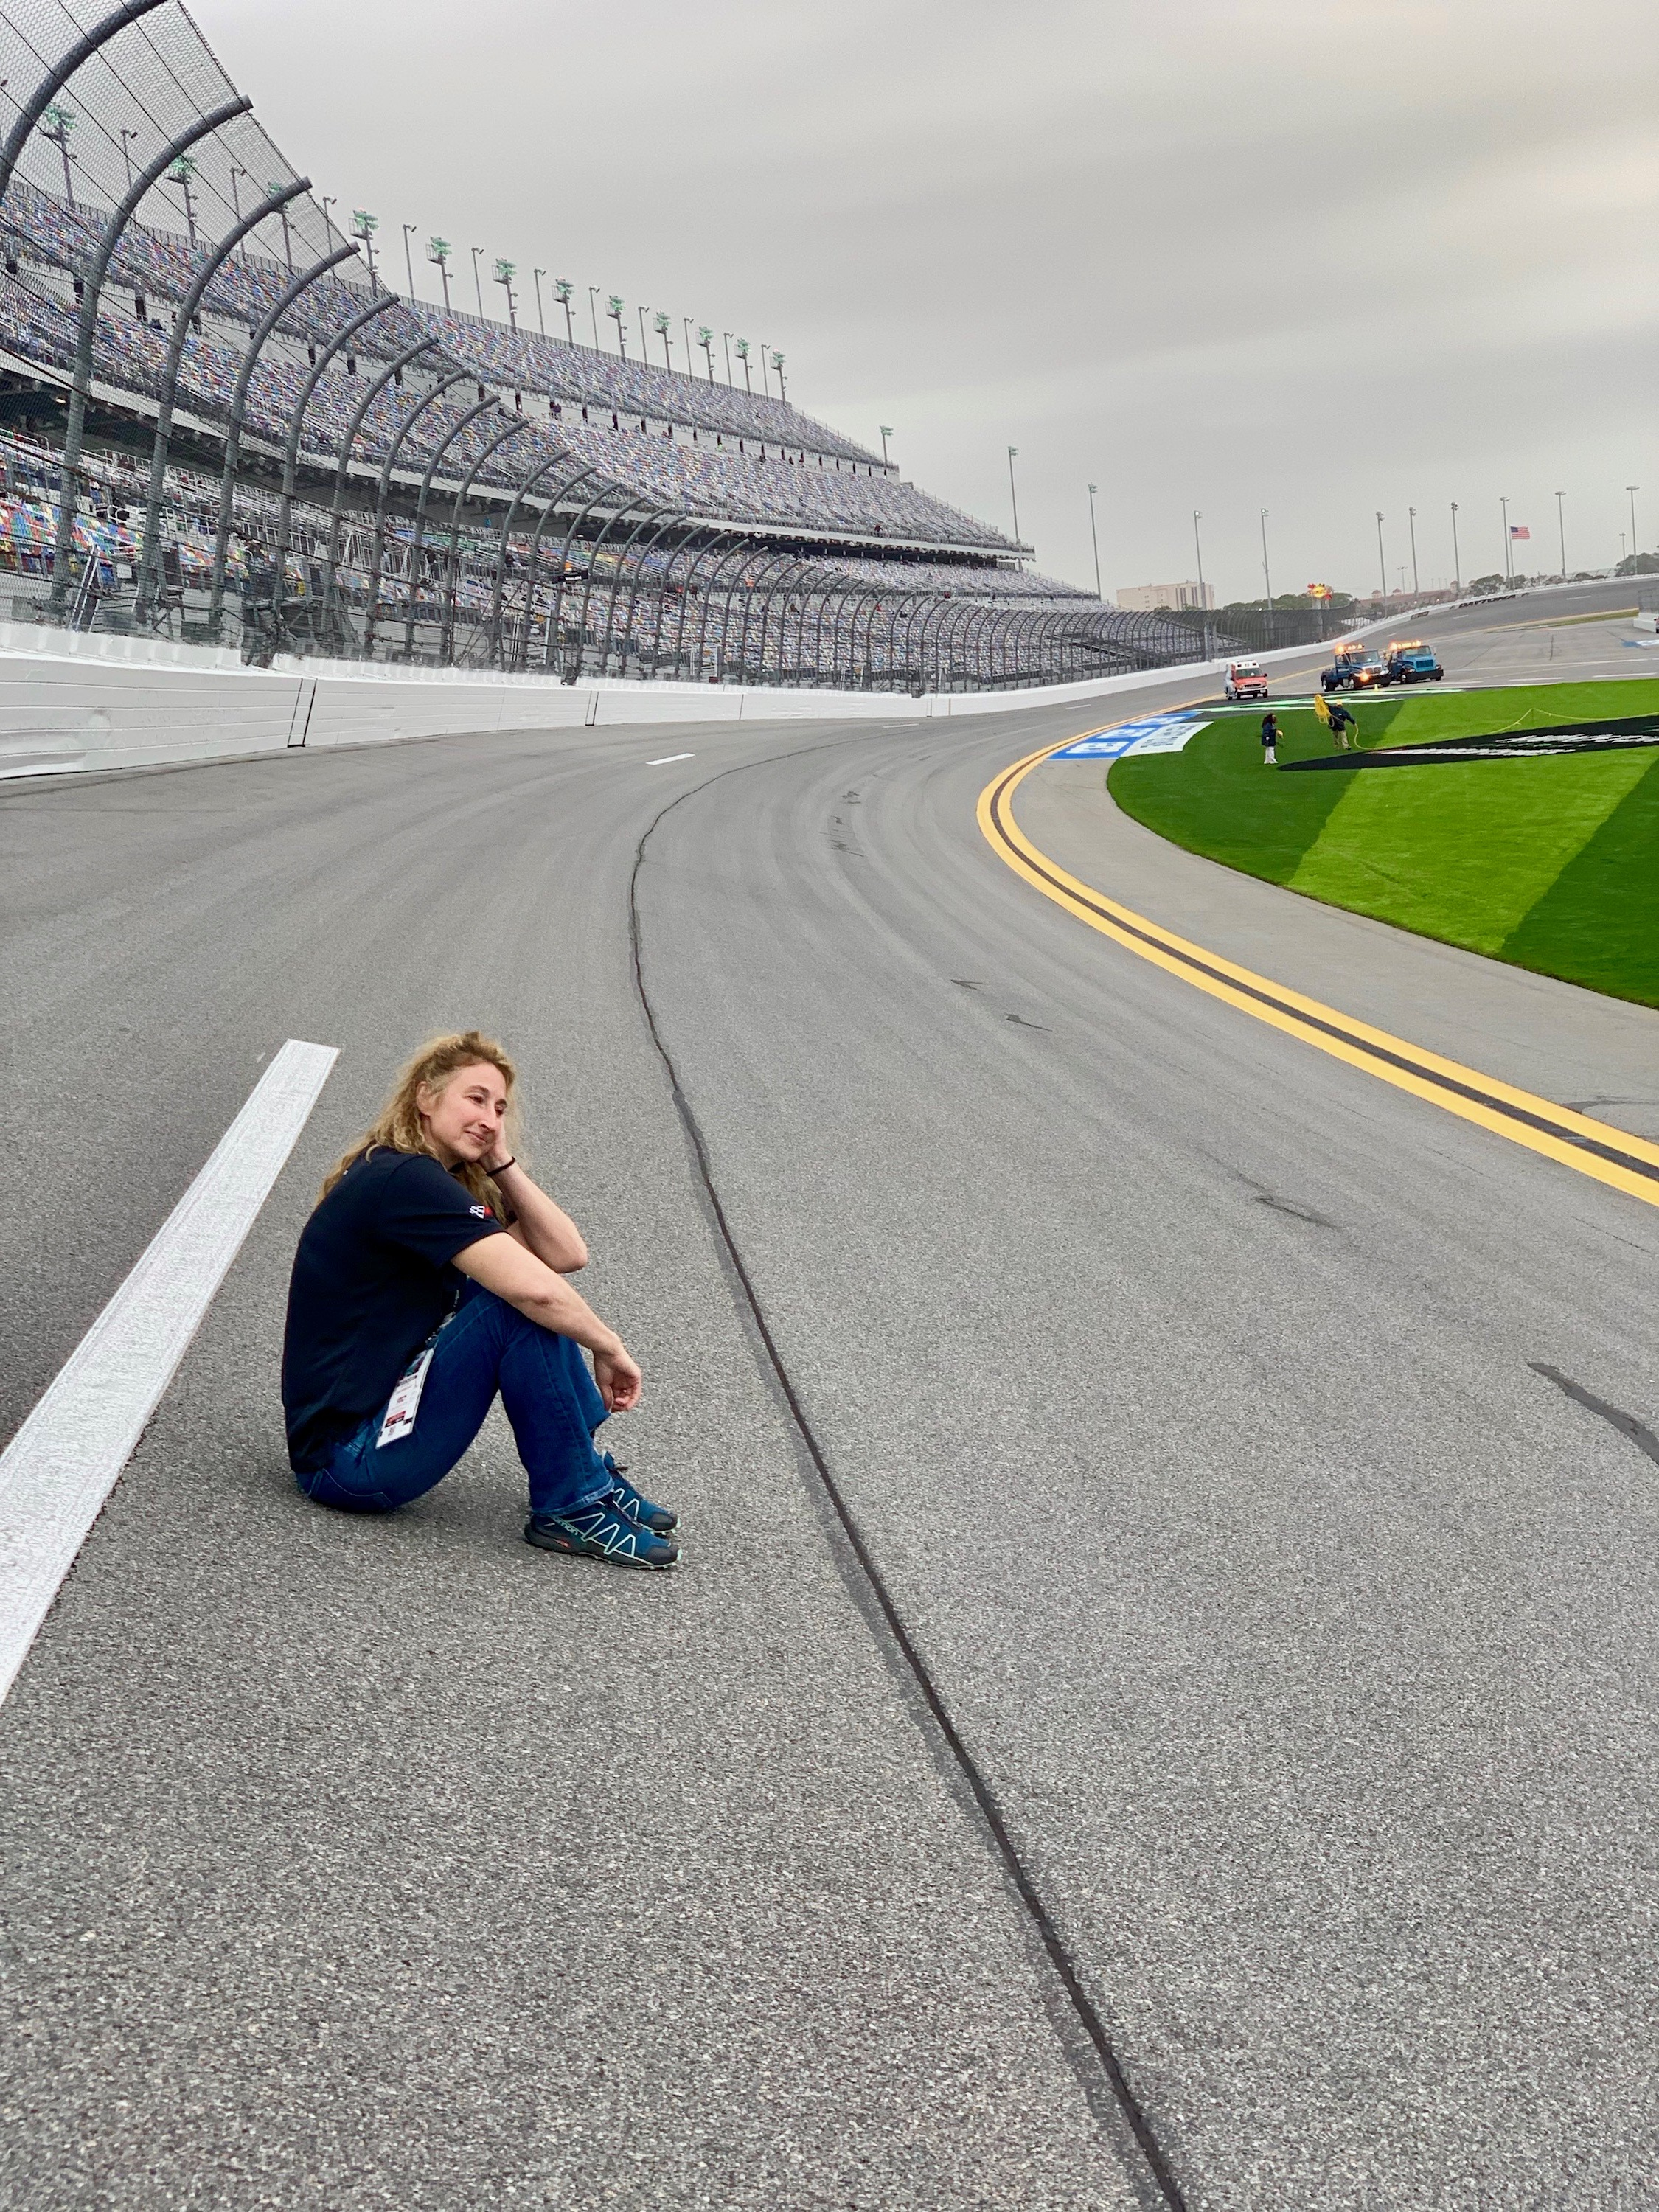 This looks like a good spot to wait at the Daytona International Speedway.